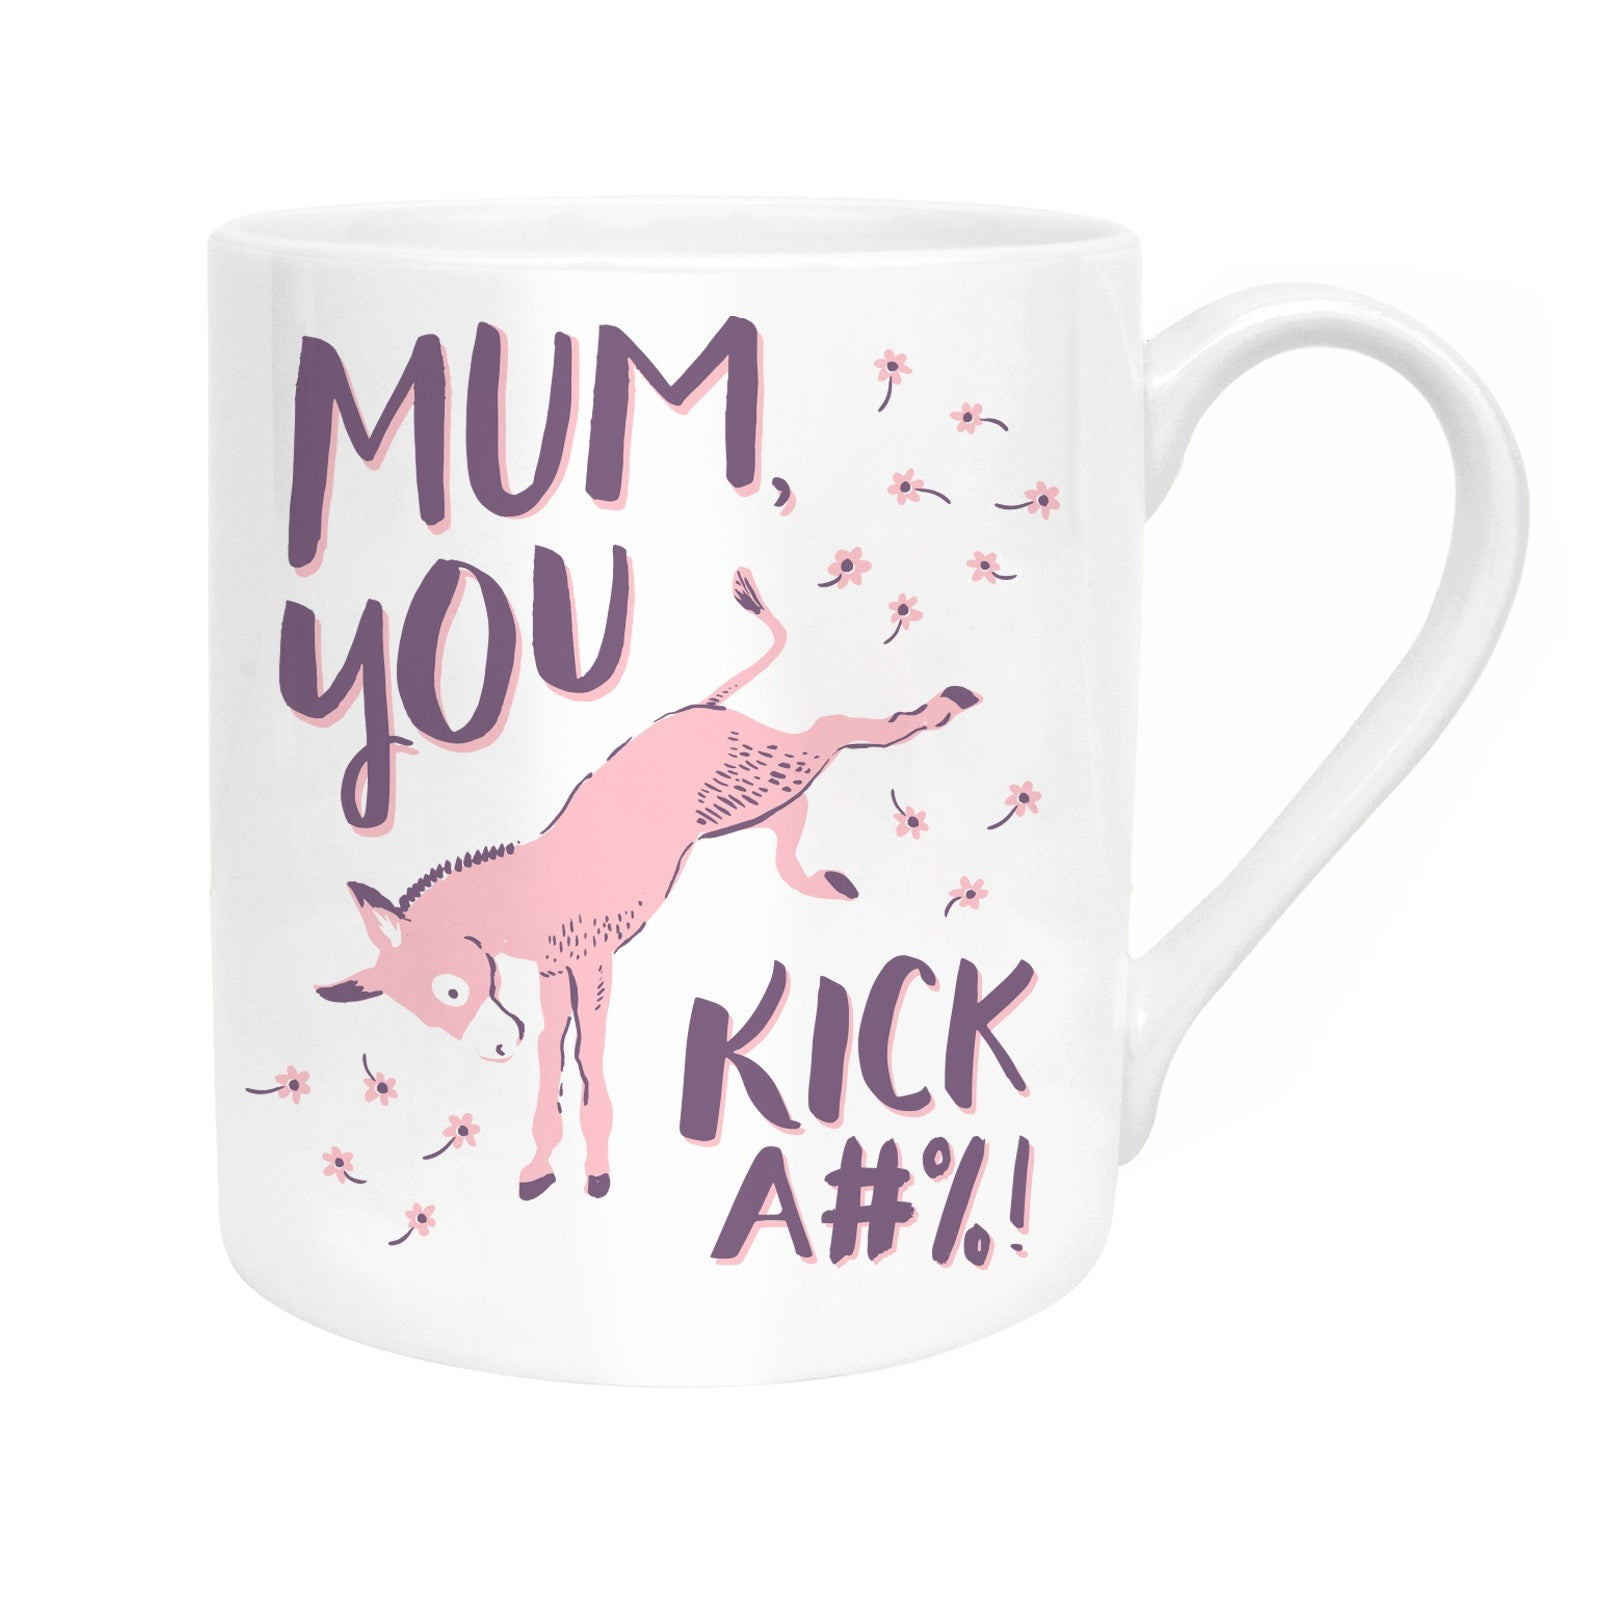 Mum, You Kick Ass Mug